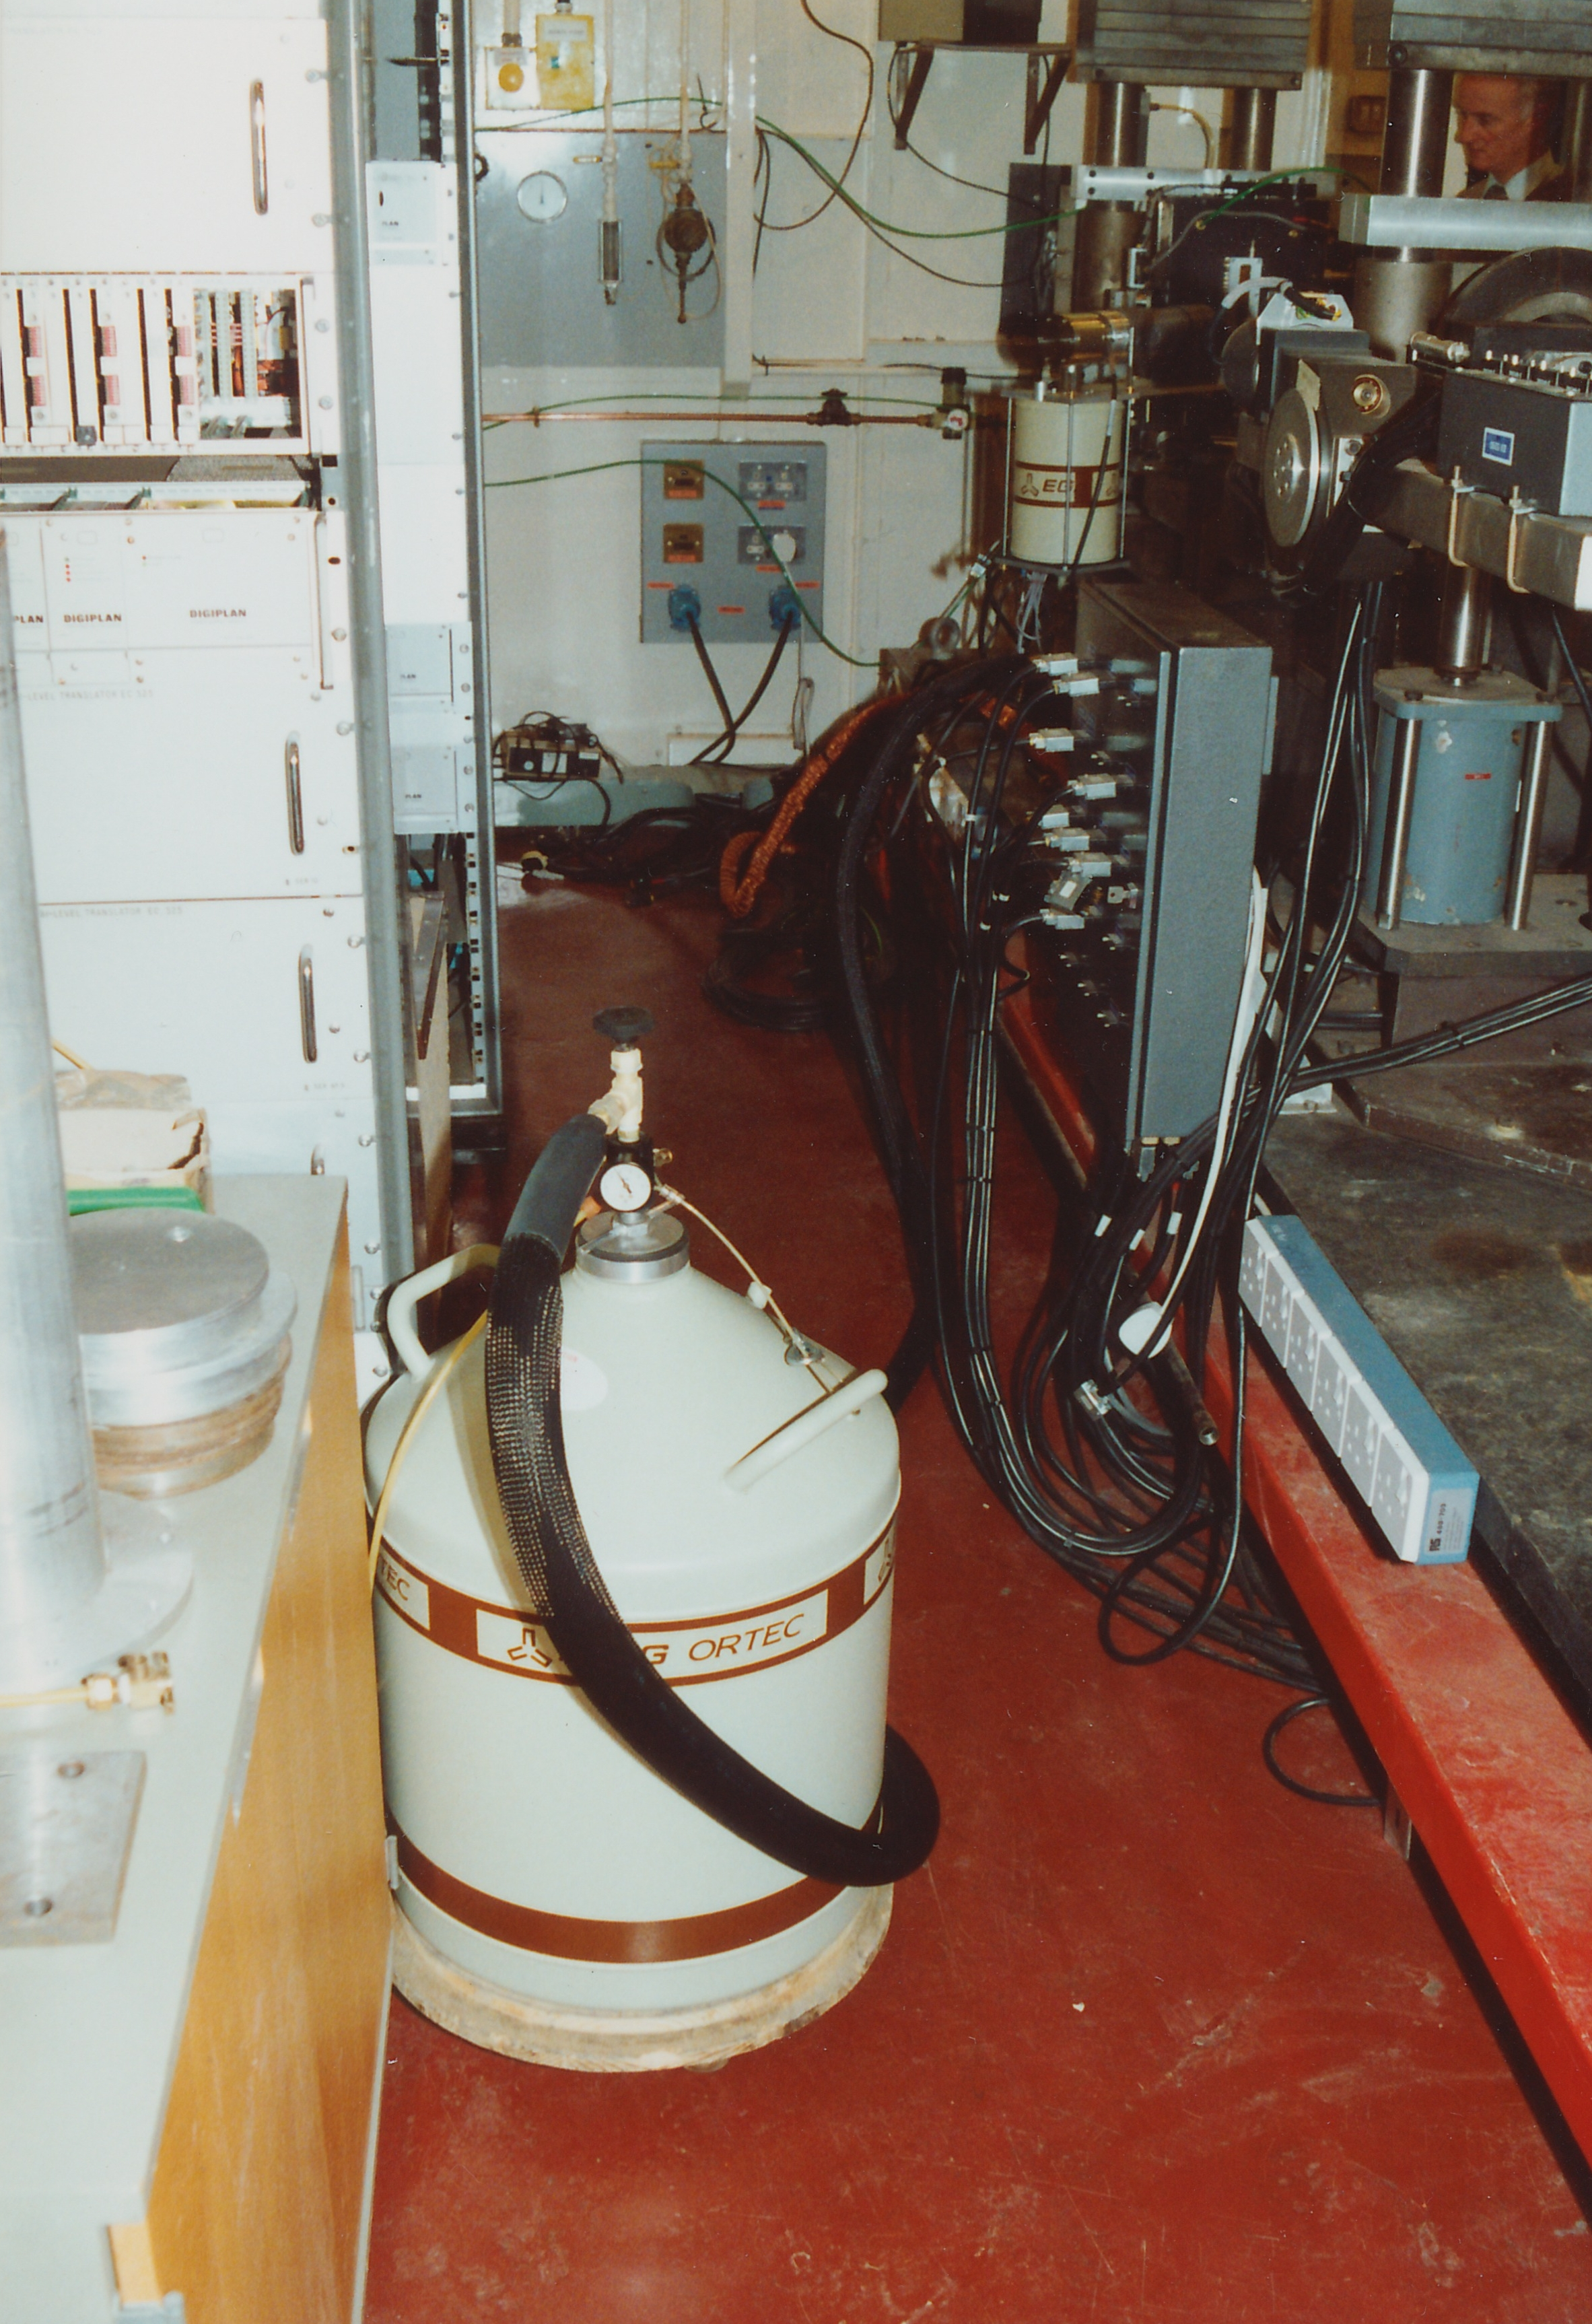 sc0045.jpg - Liquid nitrogen dewar on castored platform ready to refill detector, Apr 1990